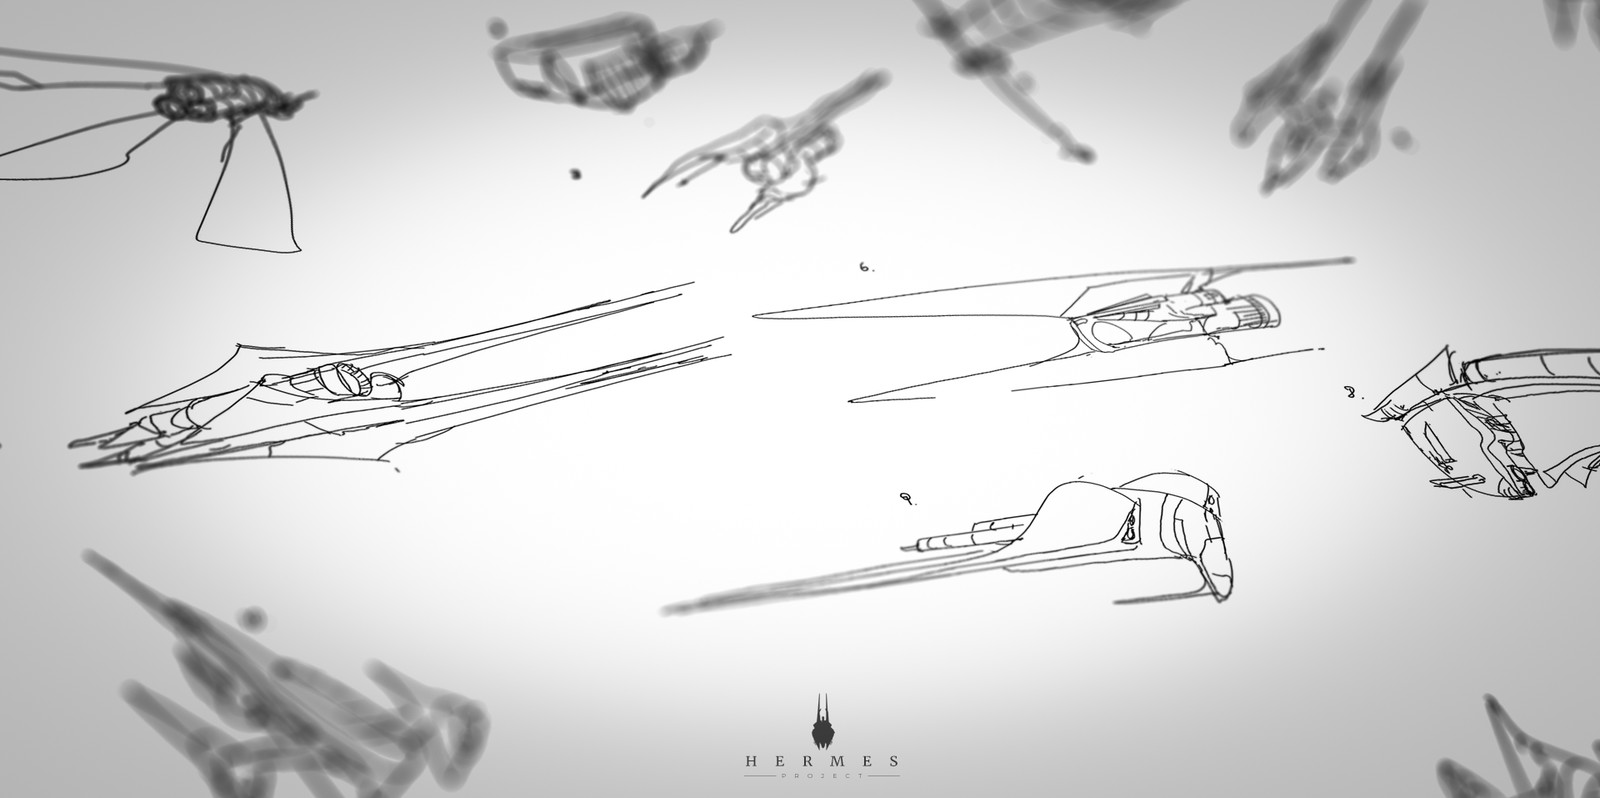 Rough sketches of the initial design of the ship